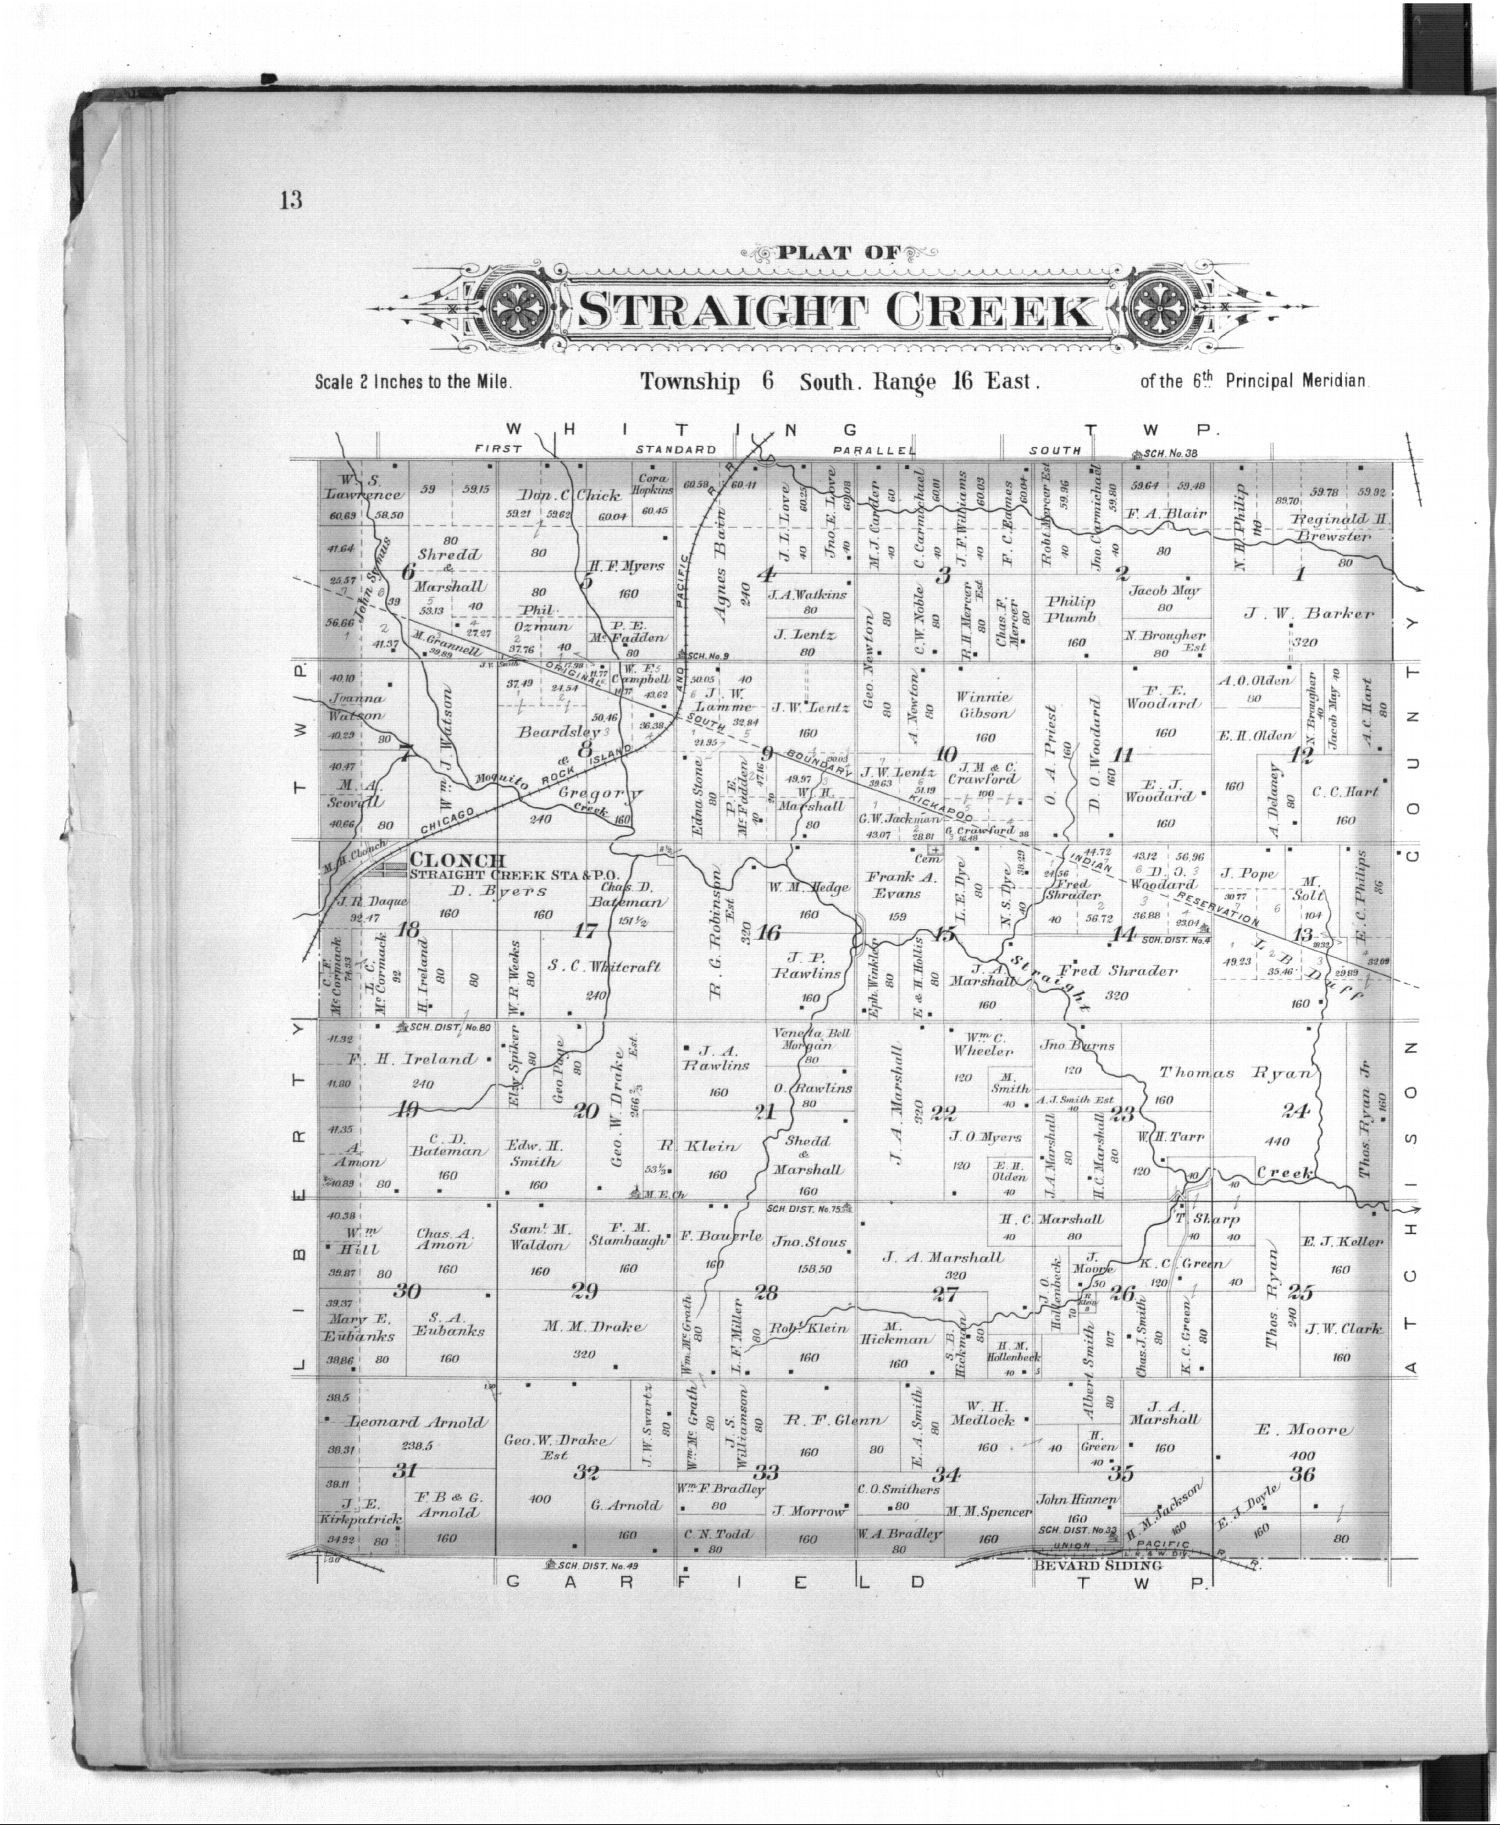 Kansas harper county danville - On The County Map Straight Creek Can Be Found In Township 6 South And Range 16 East On The Township Map Straight Can Be Found In Section 18